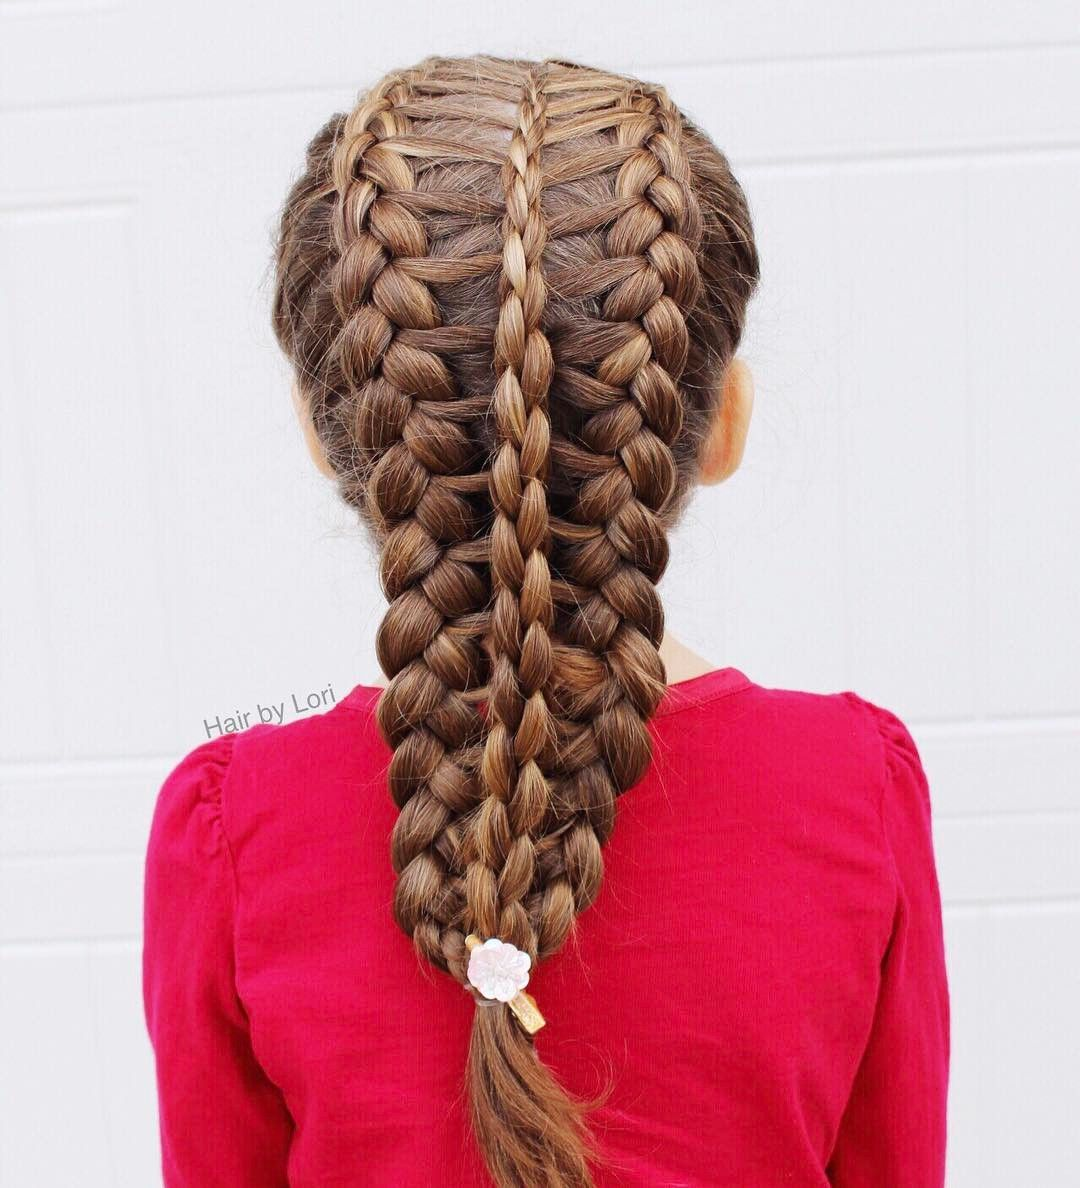 Two feathered Dutch braids into a 3D round braid on Gracie